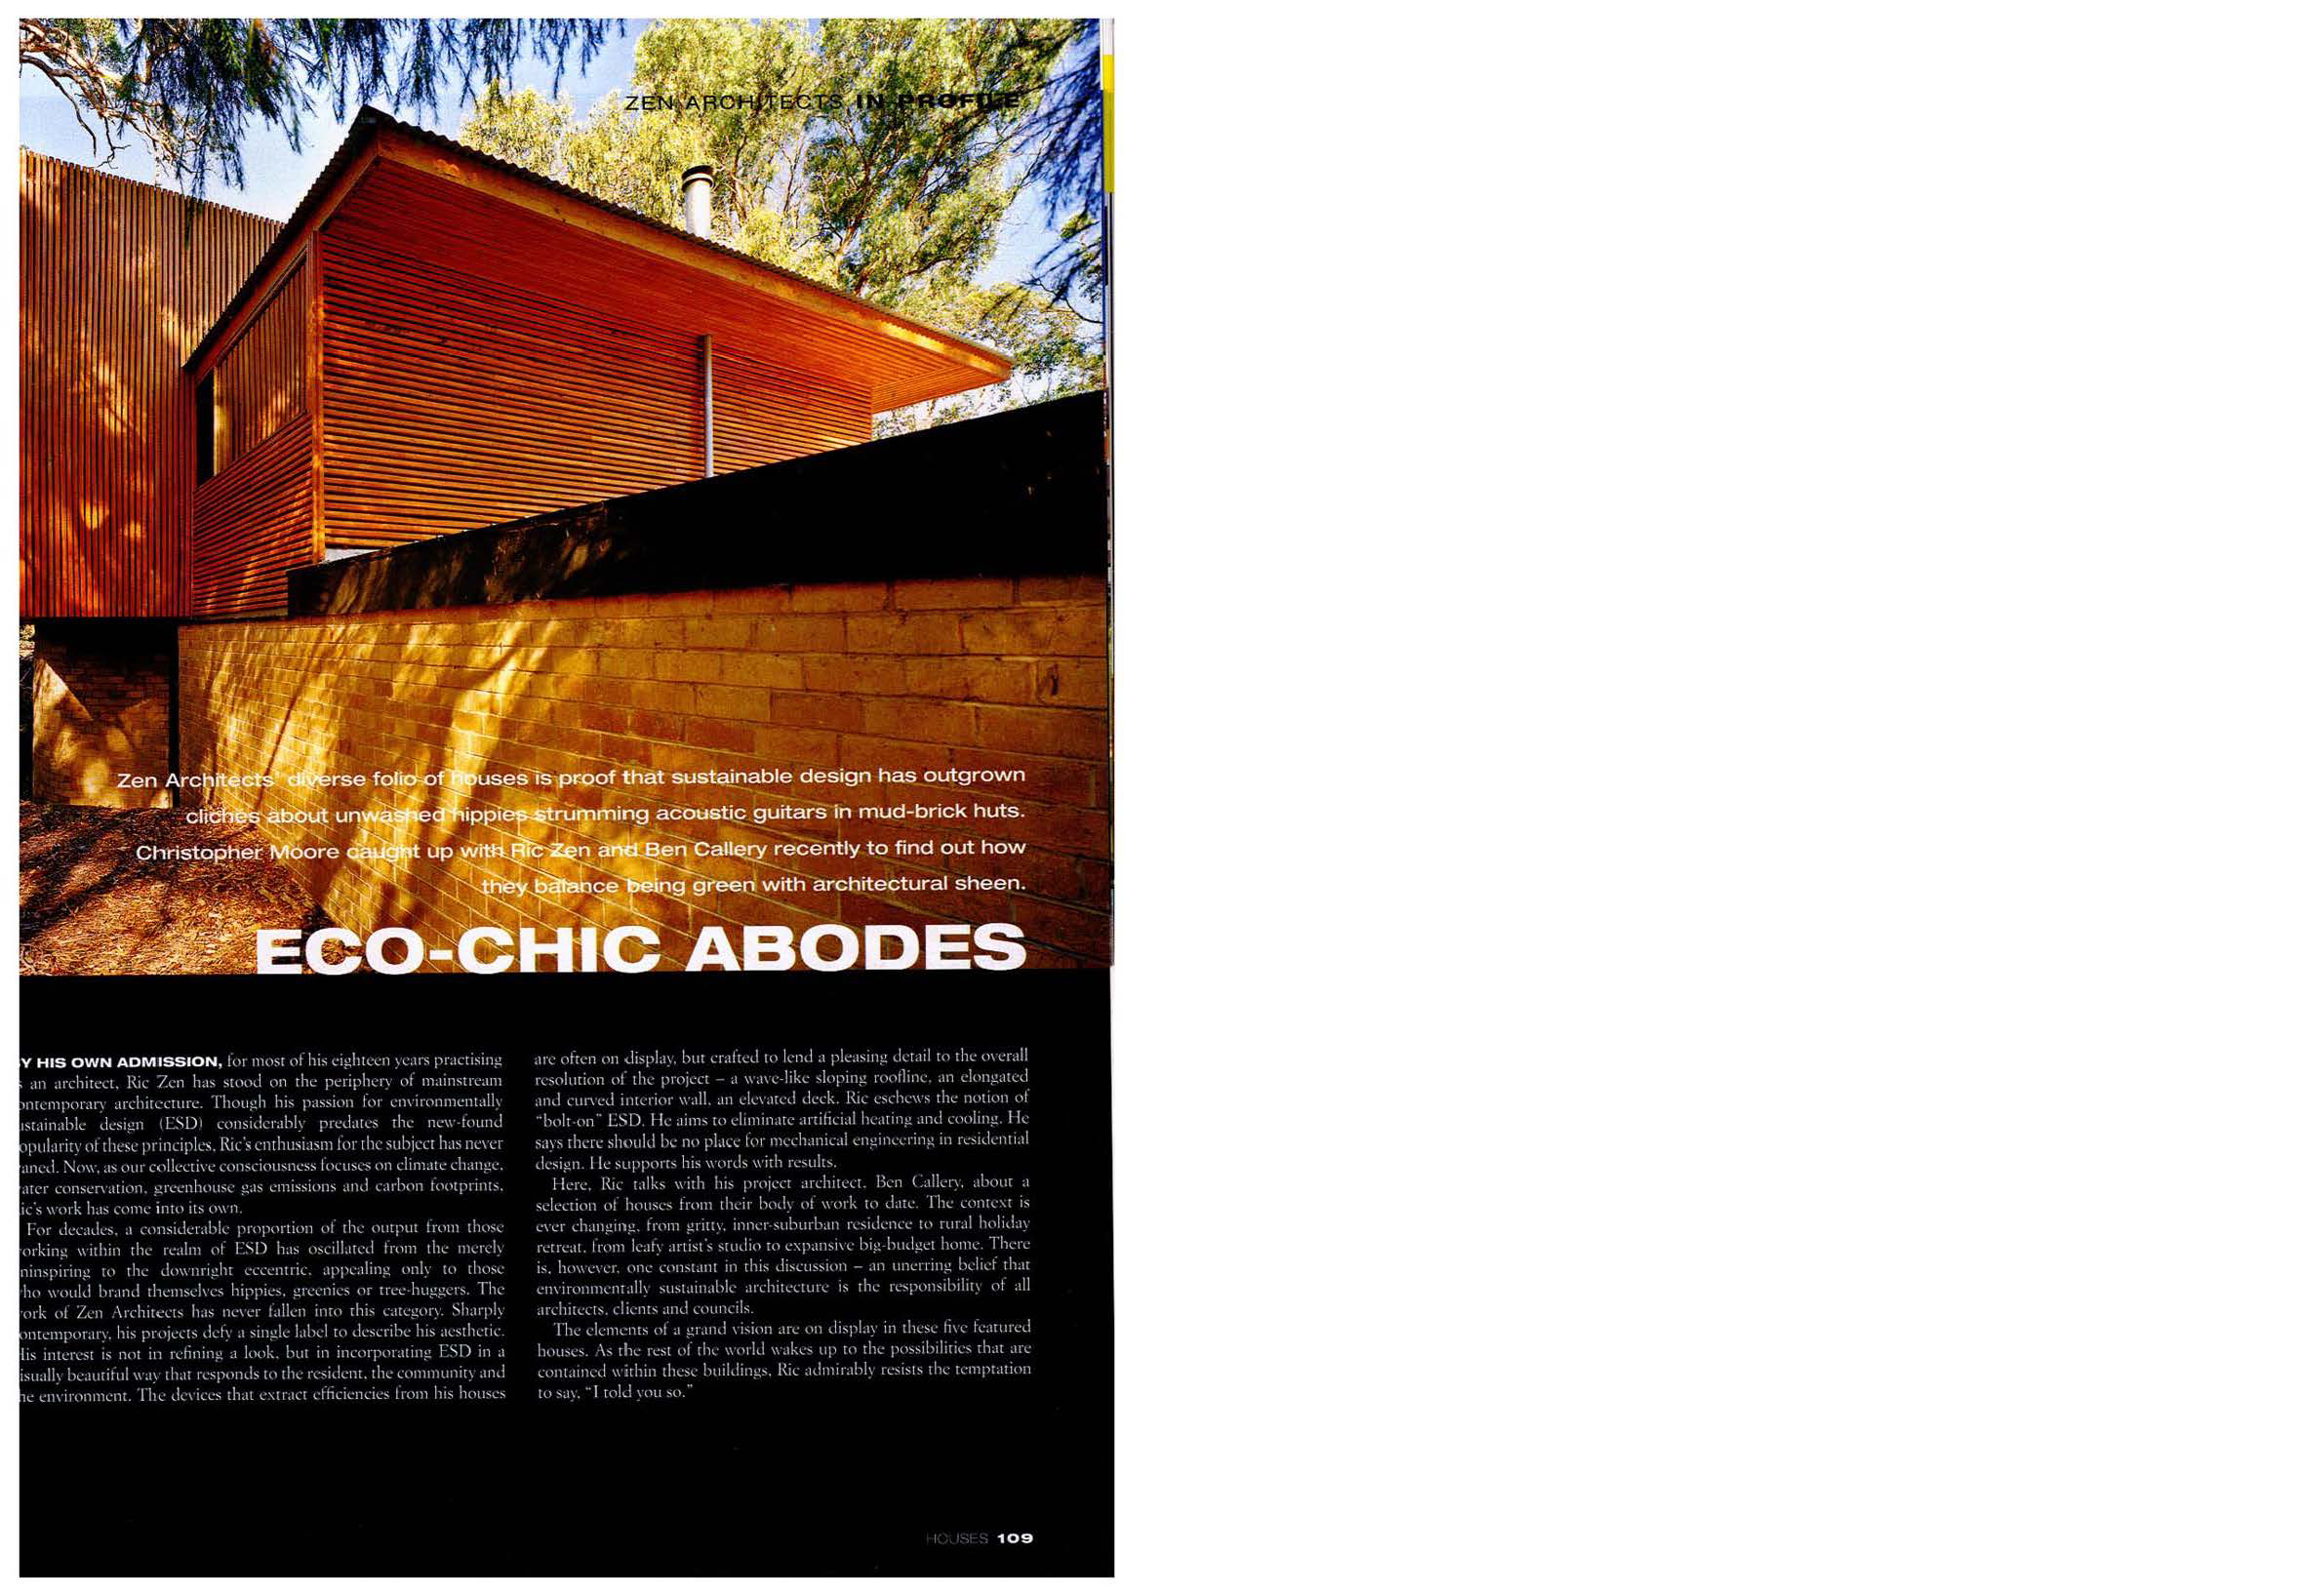 2008_Houses Magazine_Eco-Chic Abodes_Page_01.jpg